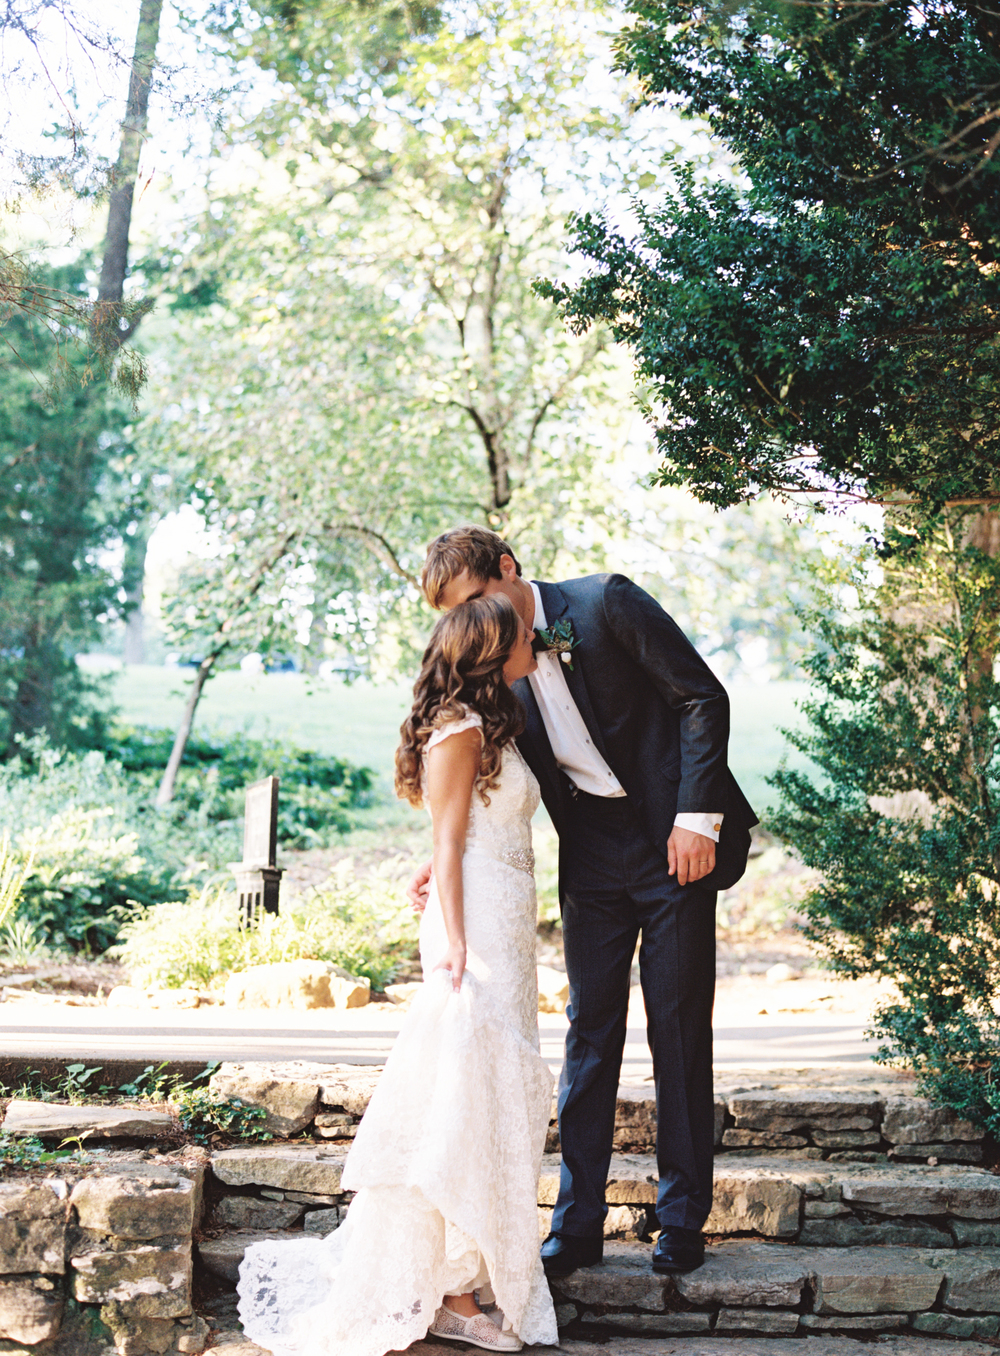 Cheekwood Bride and Groom // Nashville Wedding Flowers